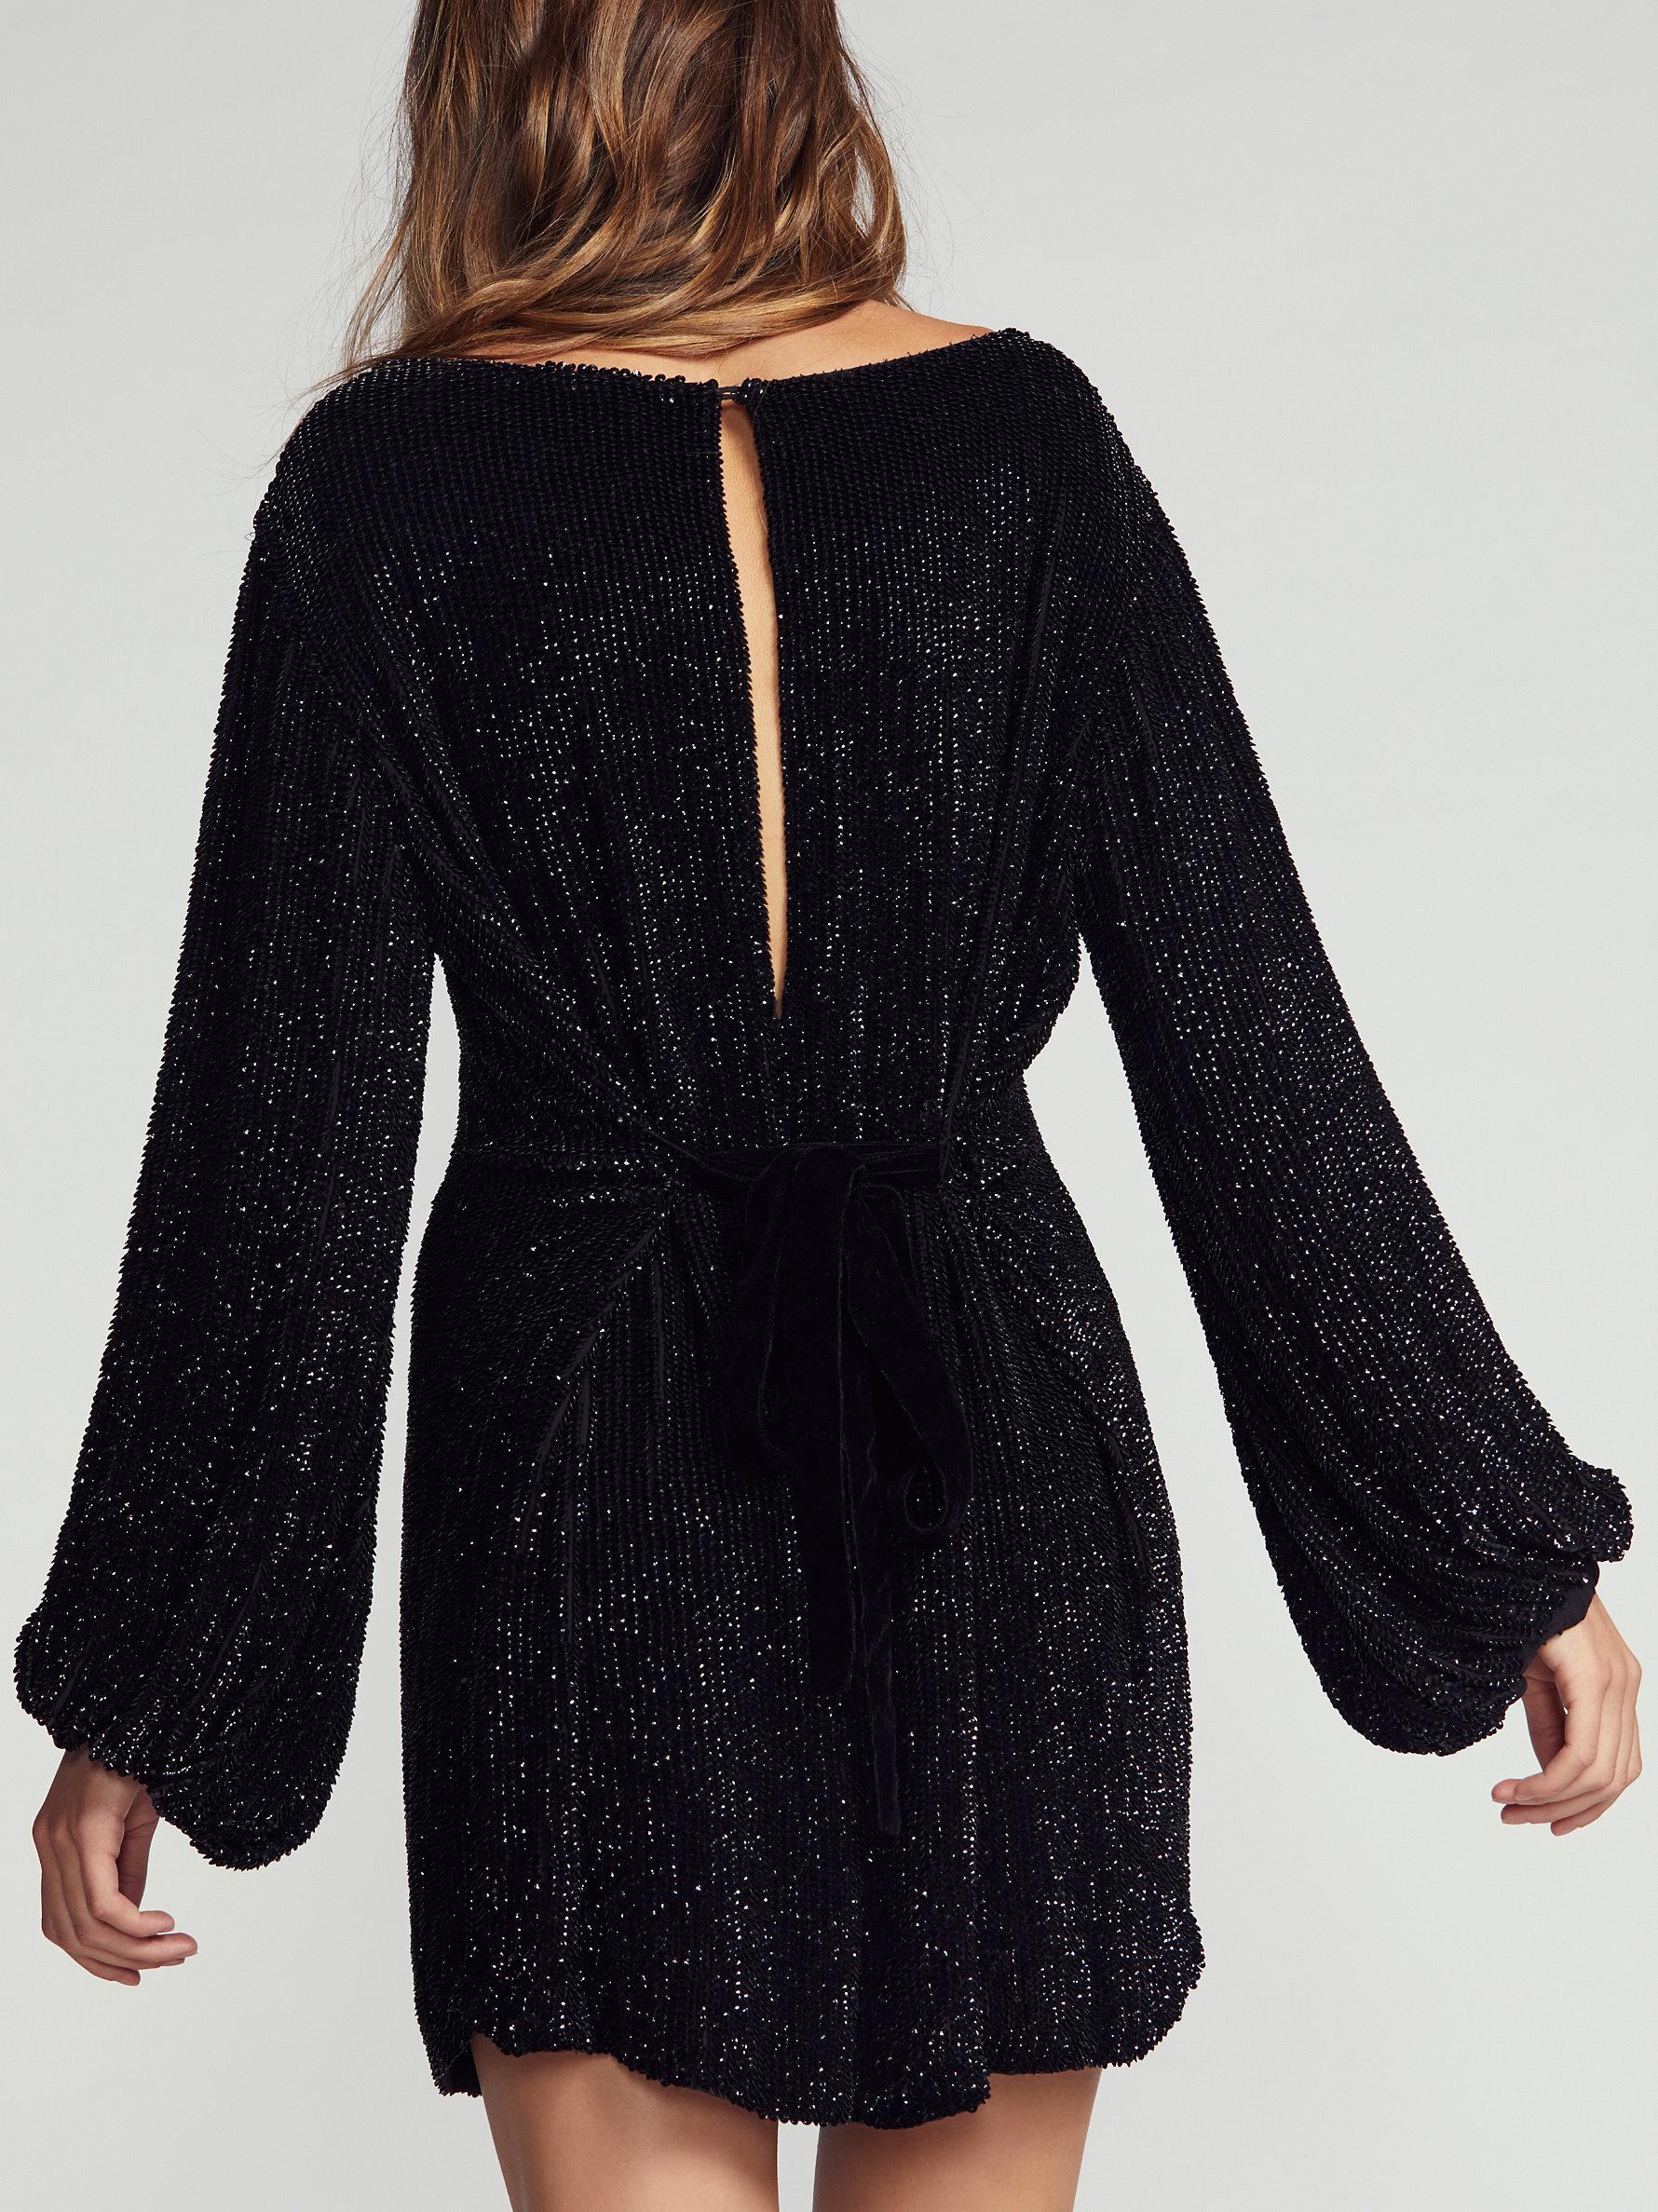 1a6f50a4 Free People Moonglow Sequin Mini Dress in Black - Lyst